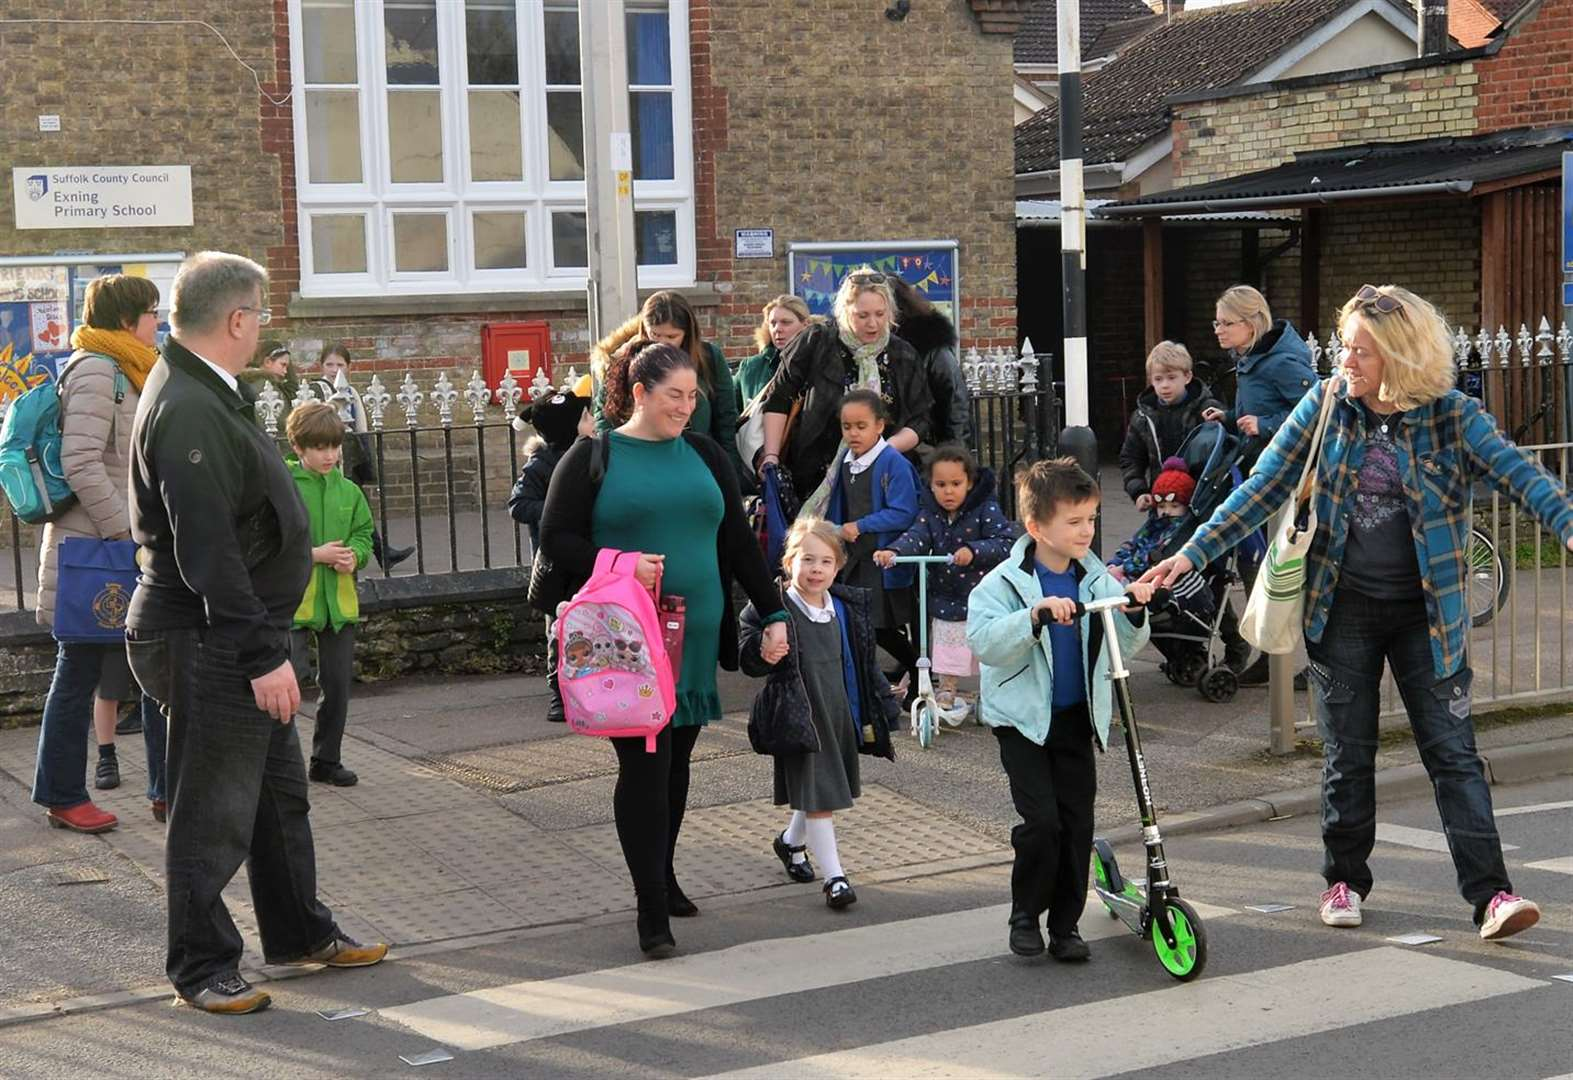 Parents urge action on crossing safety